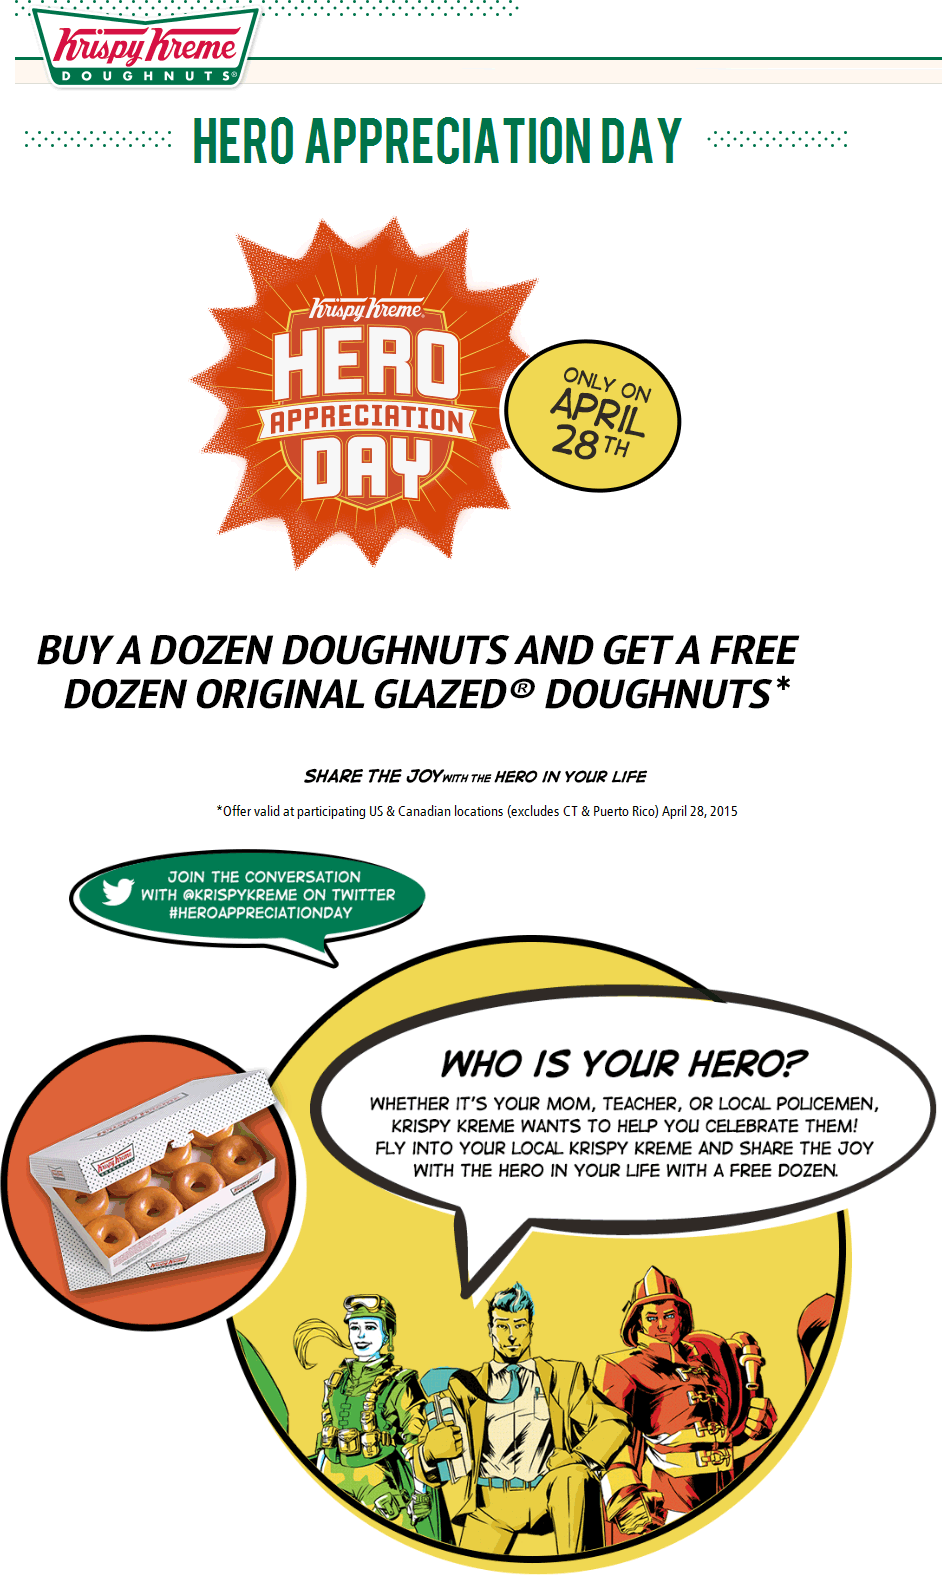 Krispy Kreme Coupon July 2017 Second dozen doughnuts free the 28th at Krispy Kreme